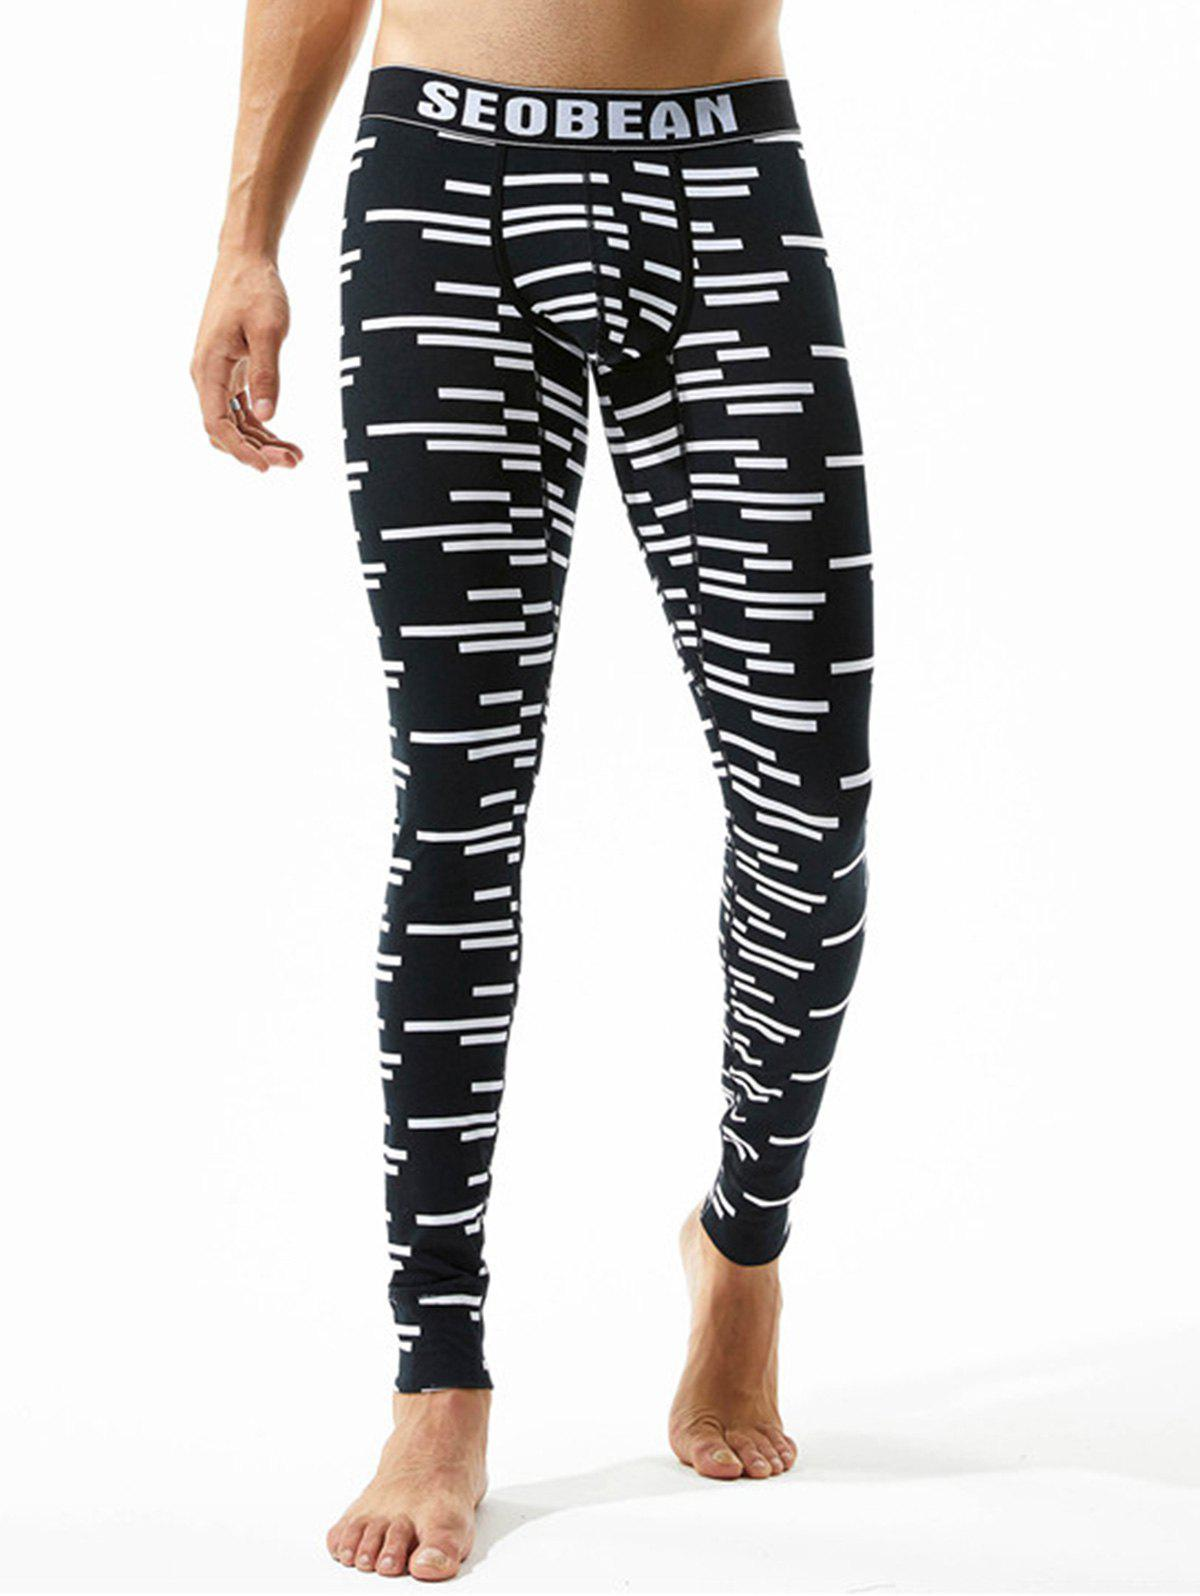 Fashion Graphic Stripe Print U Pouch Gym Pants